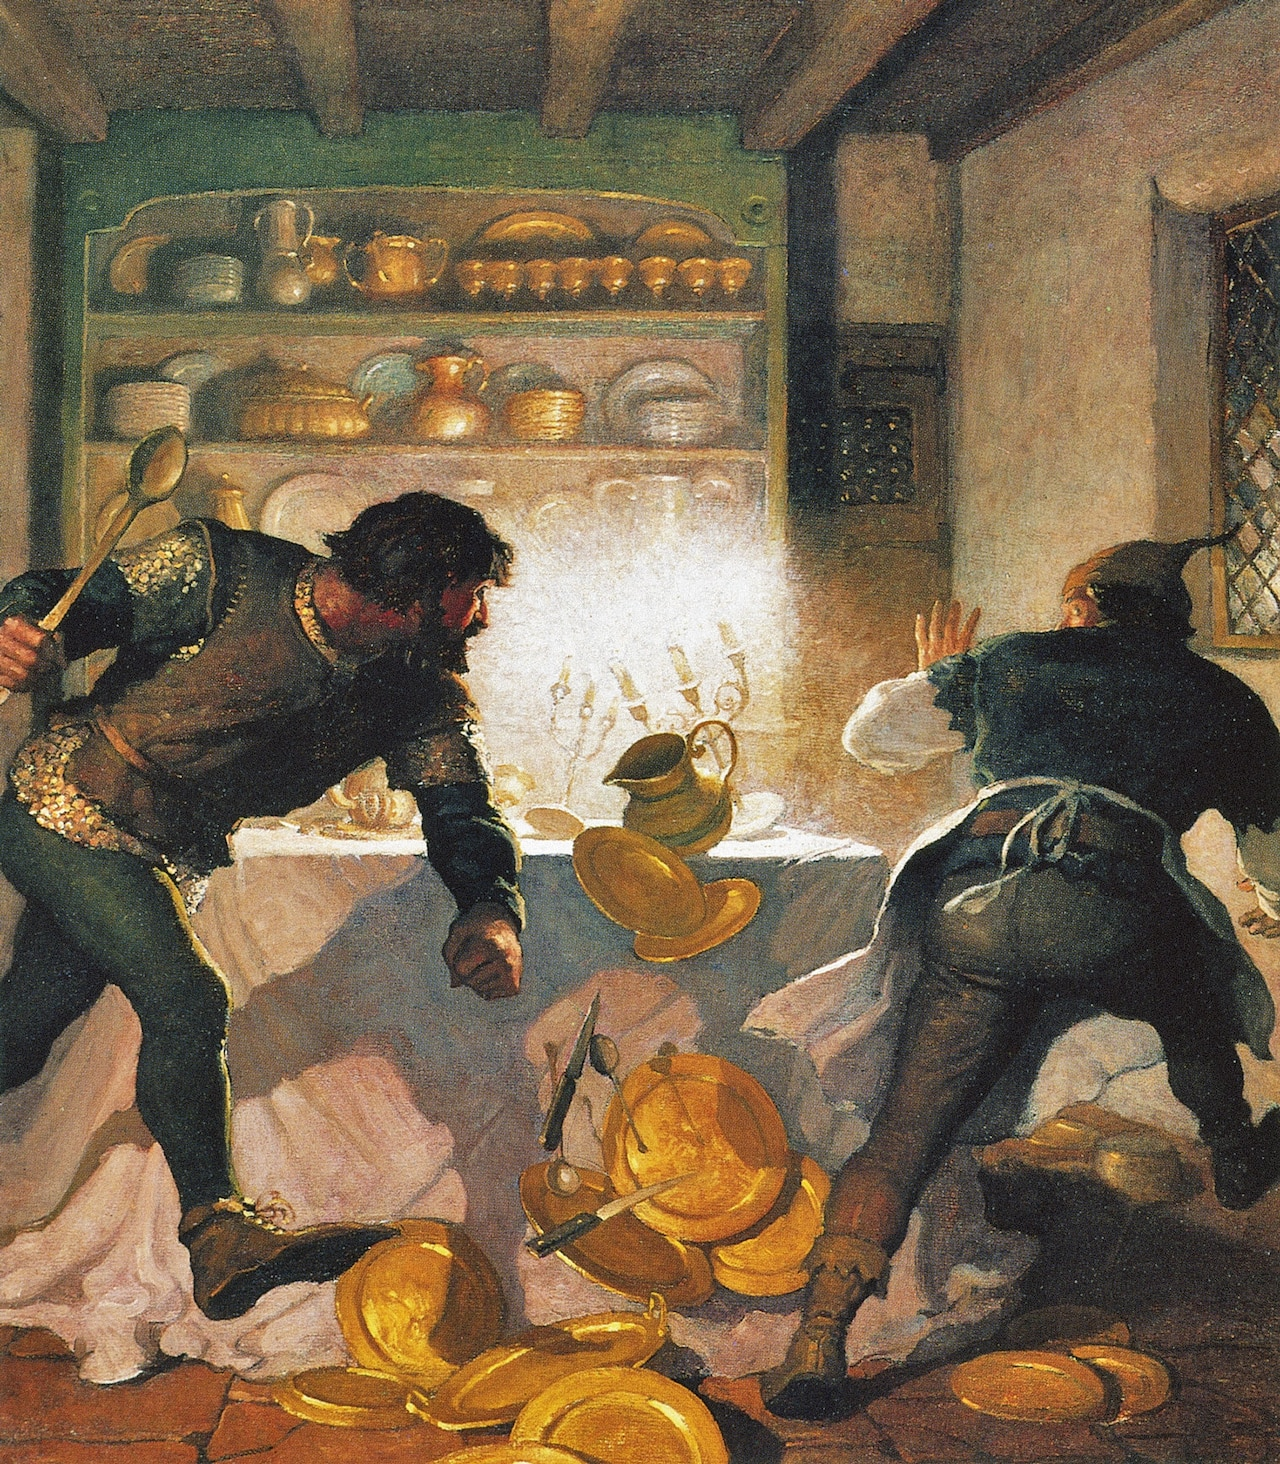 and oil painting showing Little John fighting with the cook in the Sheriff's house